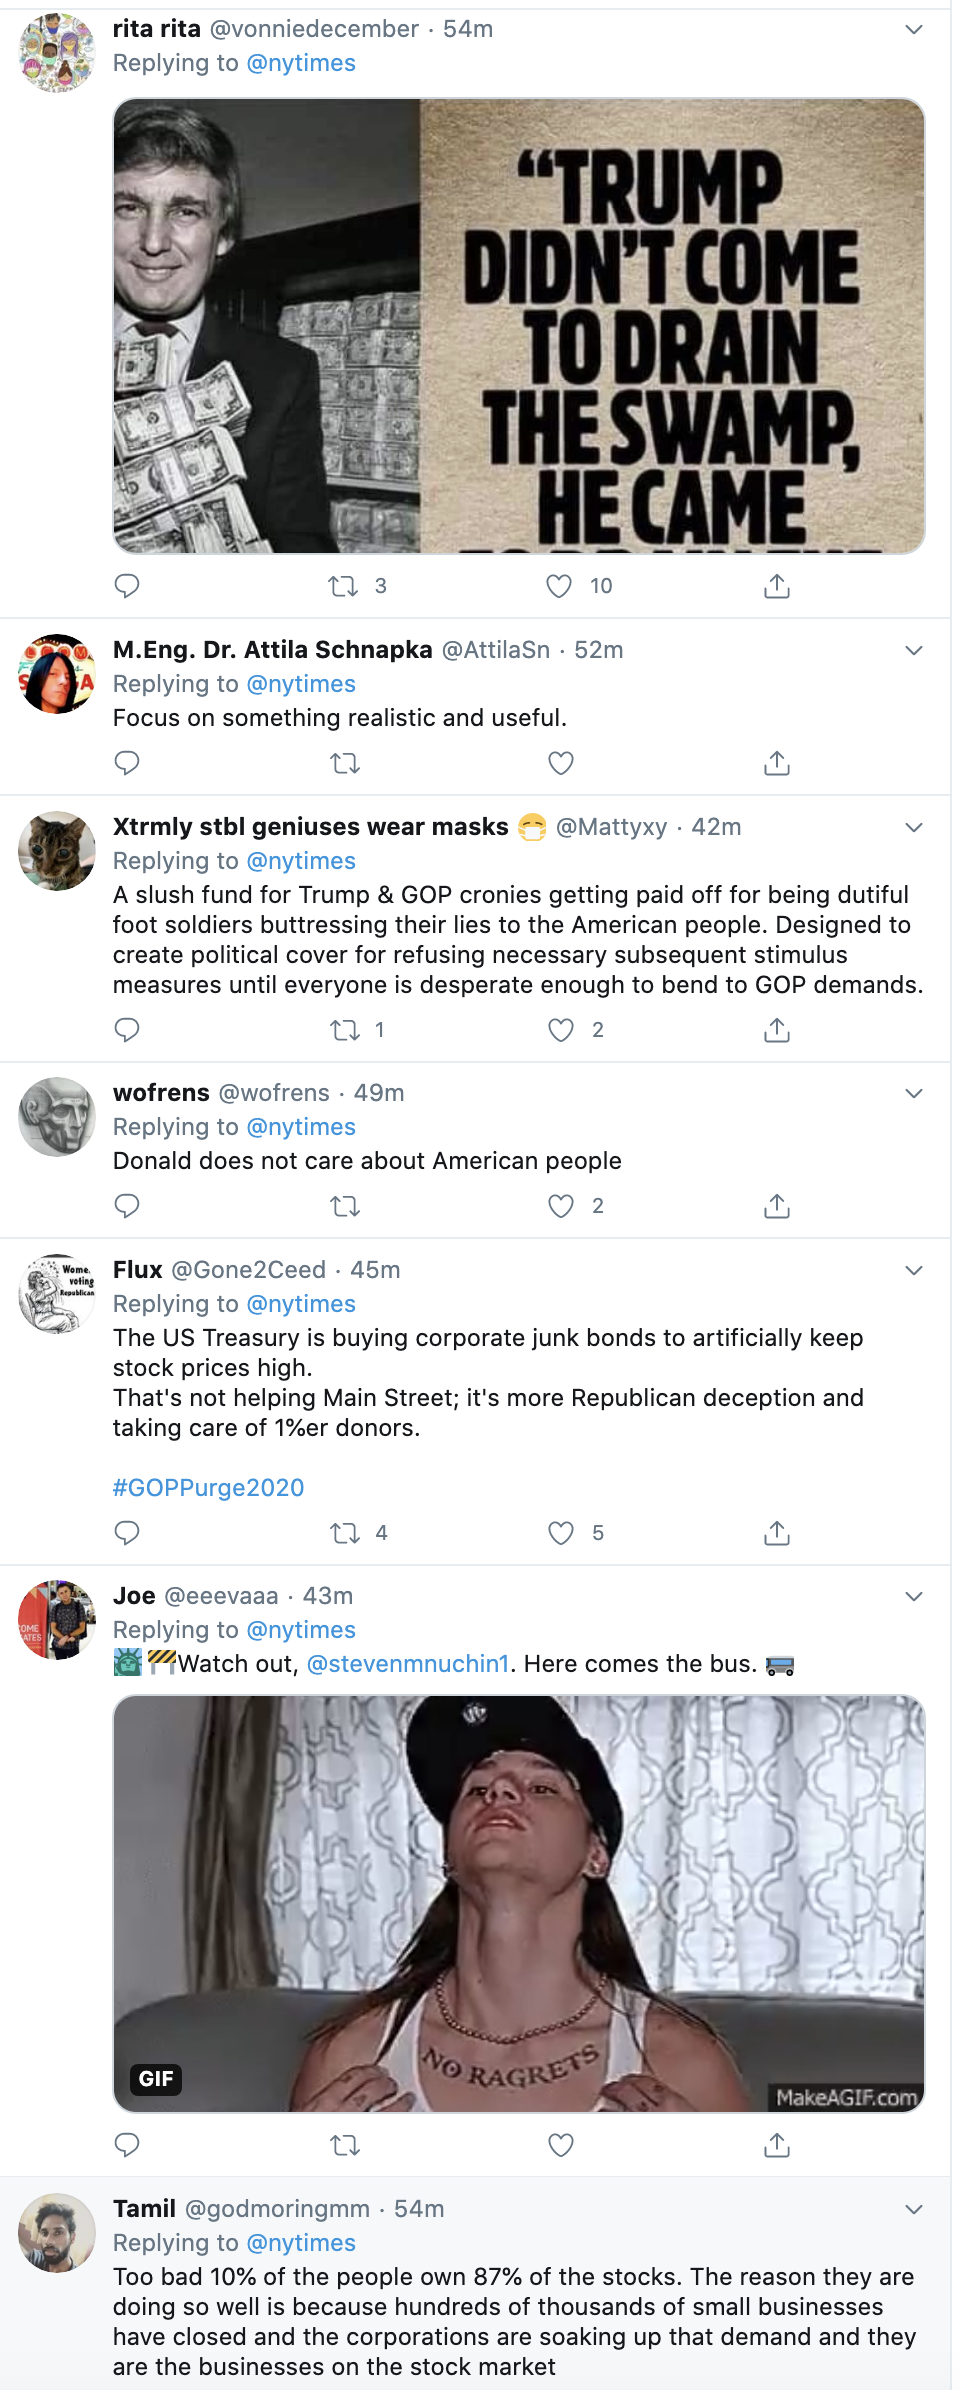 Screen-Shot-2020-08-30-at-12.36.51-PM Steve Mnuchin's Family Publicly Shames Him Over Racism & Trump Economy Featured Natural Disaster Politics Top Stories